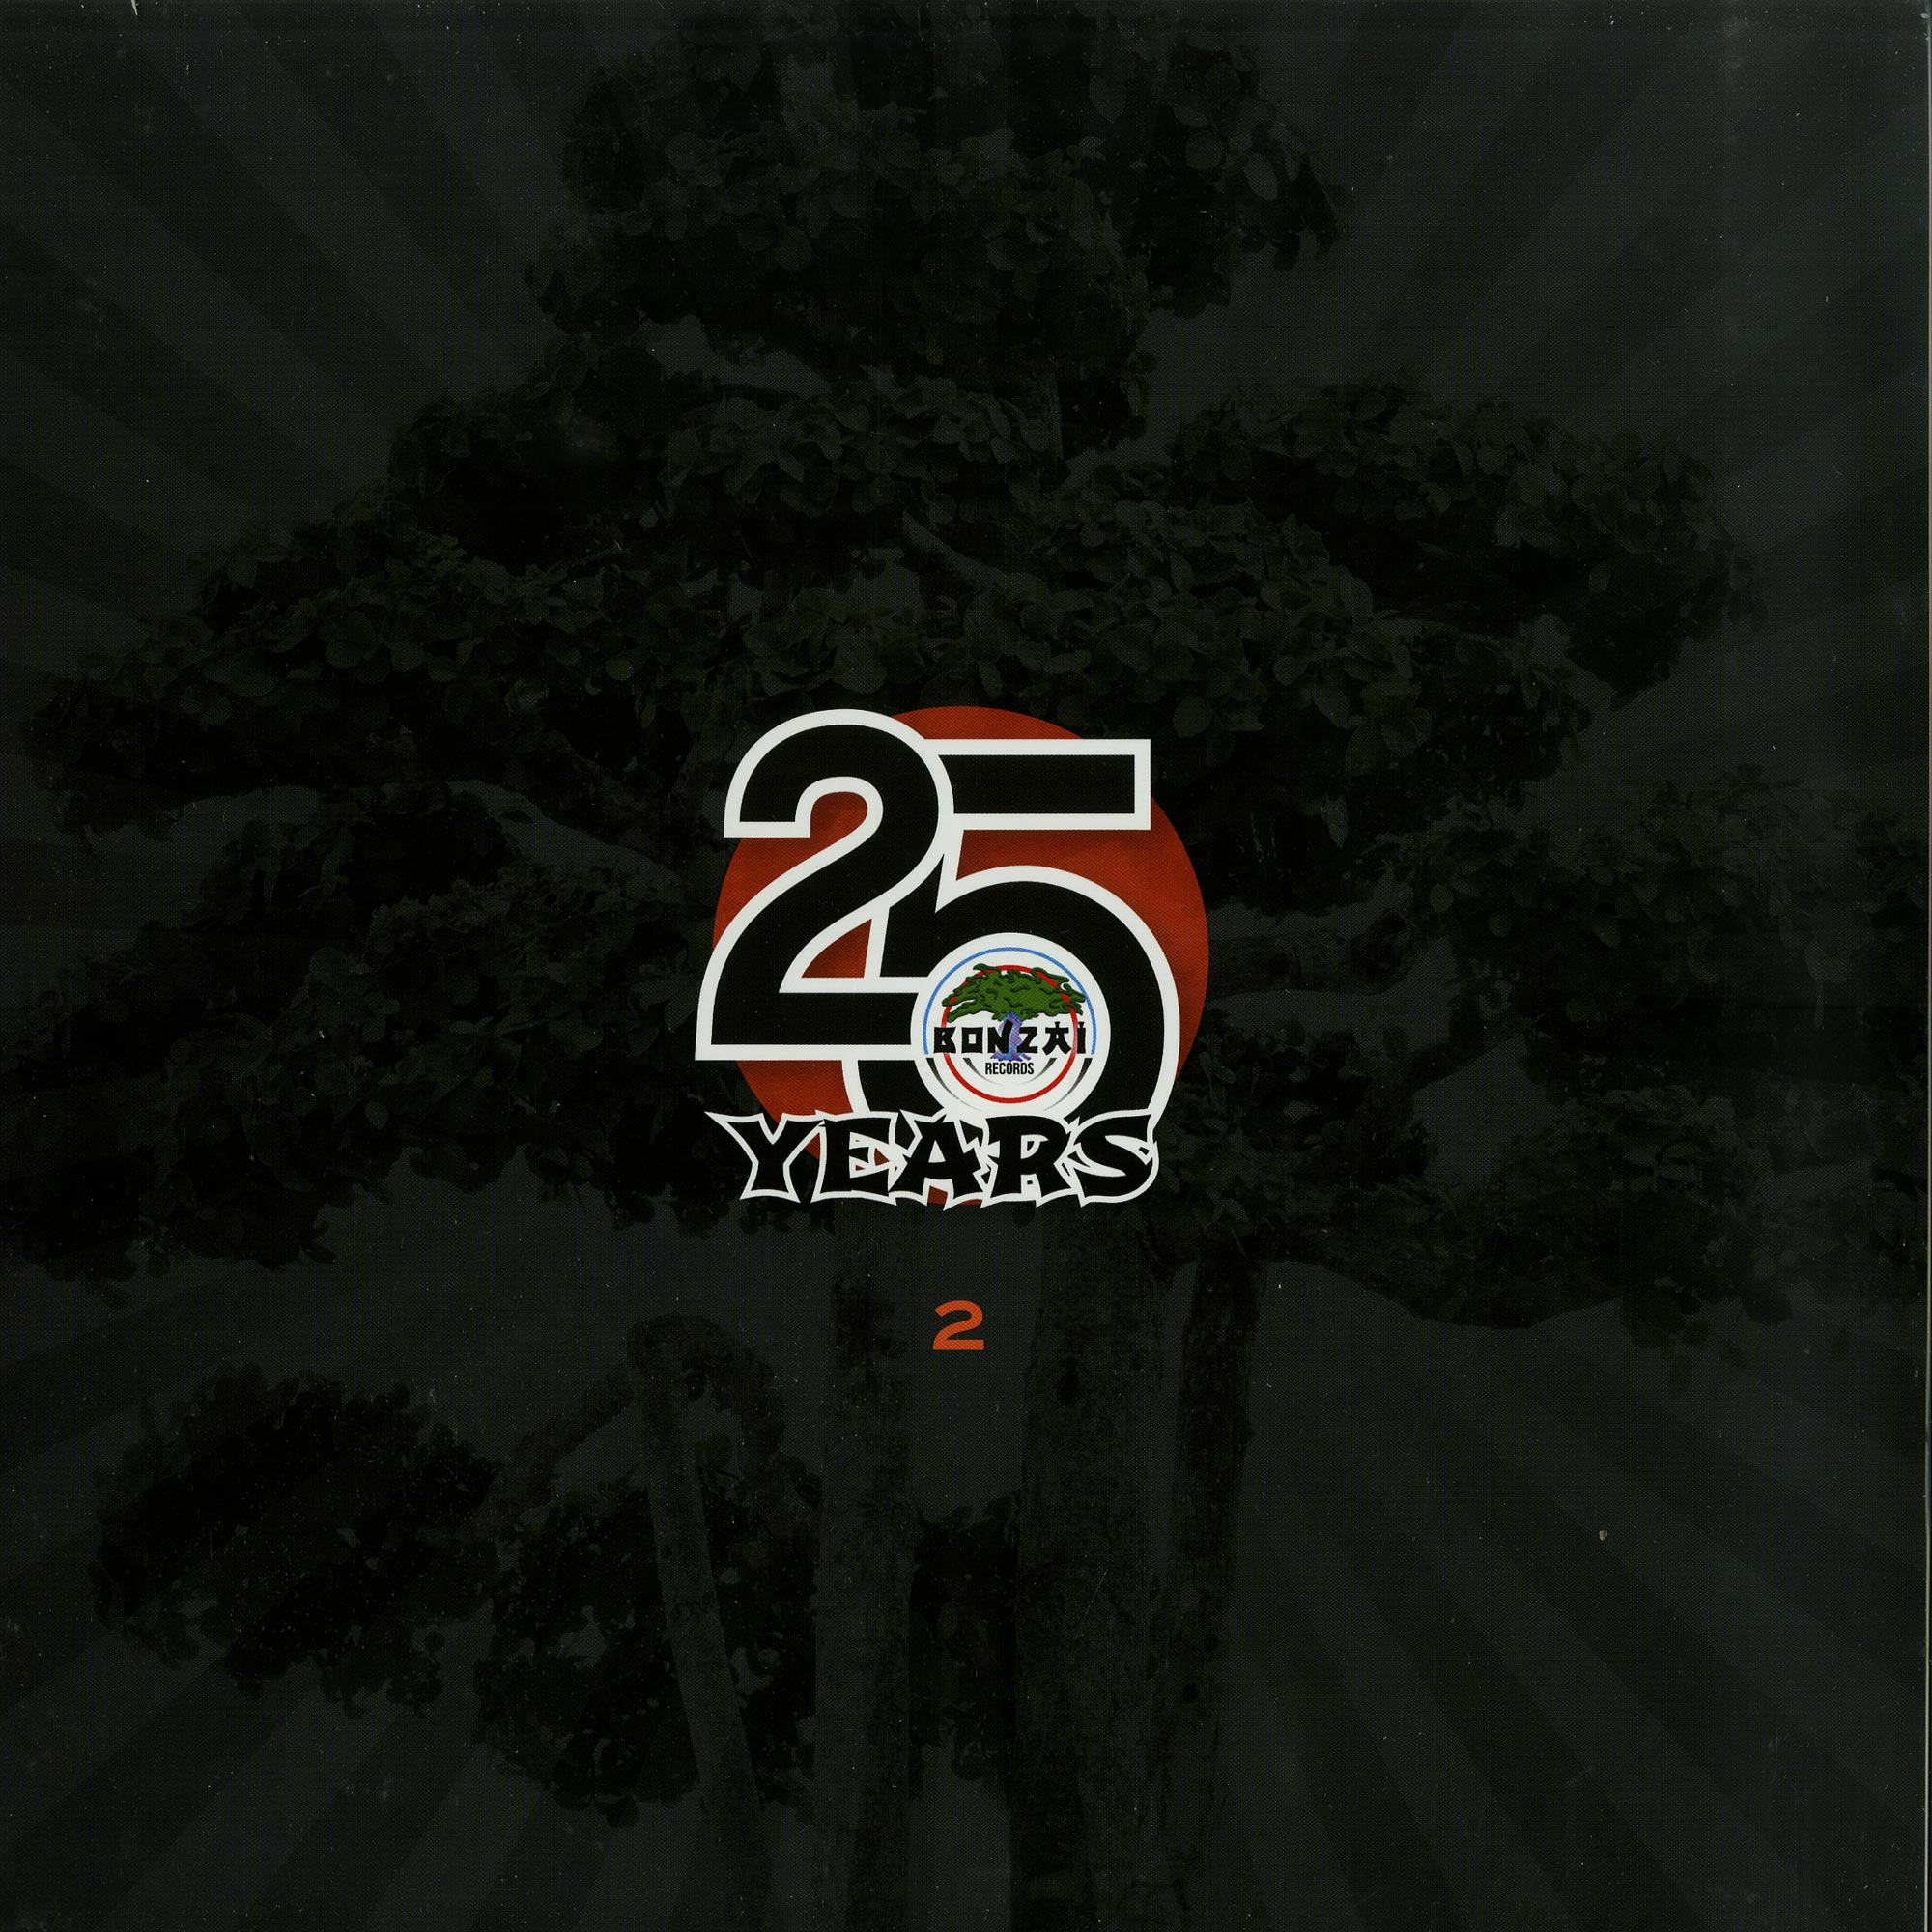 Airwave / Insider / Jones & Stephenson - PT 2 - 25 YEARS OF BONZAI